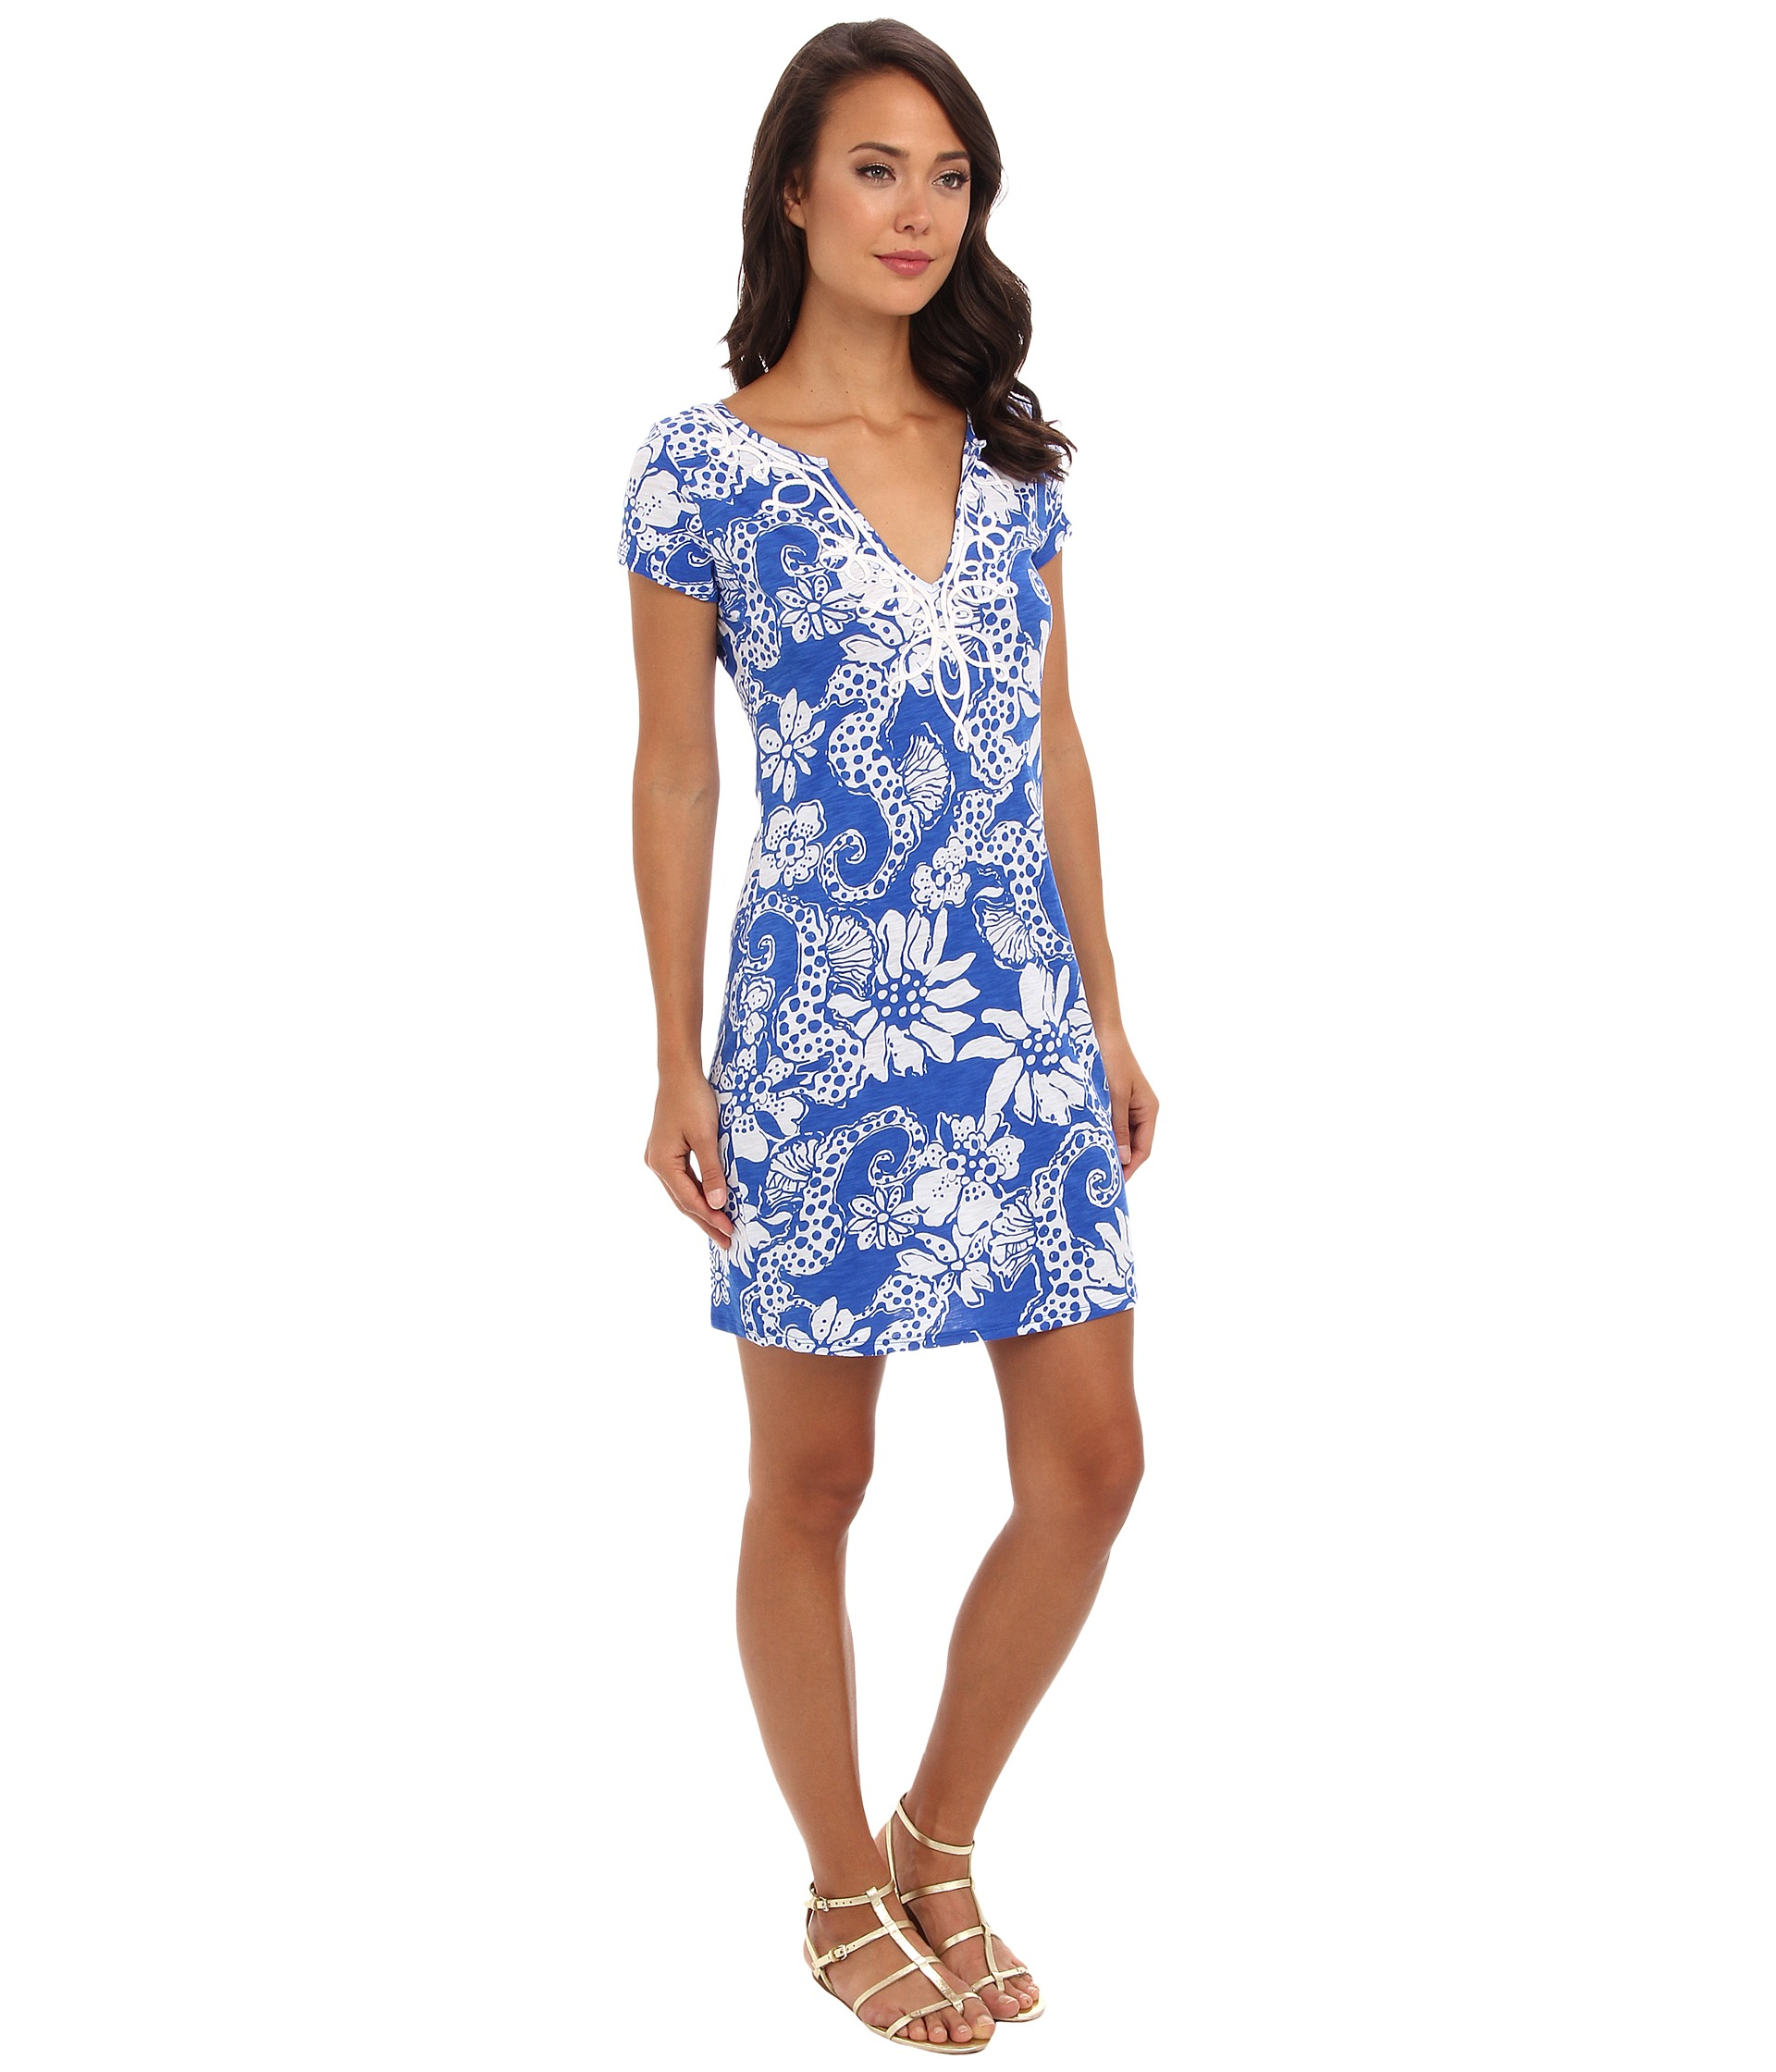 591f6a407c595a Lilly Pulitzer Brewster T-shirt Dress in Blue - Lyst